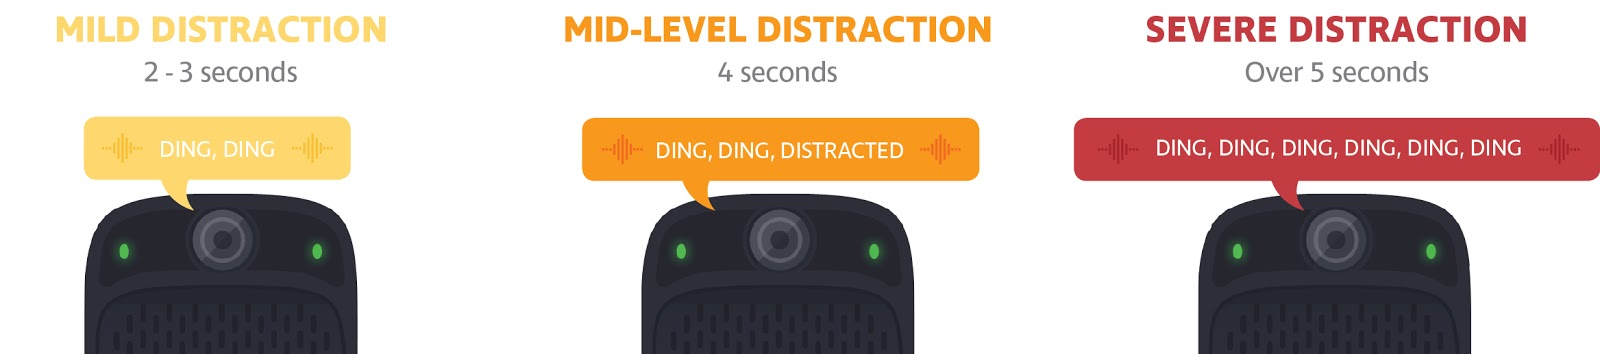 Graphic illustrating the Three Levels Of Distraction (Mild, Medium, and Severe)